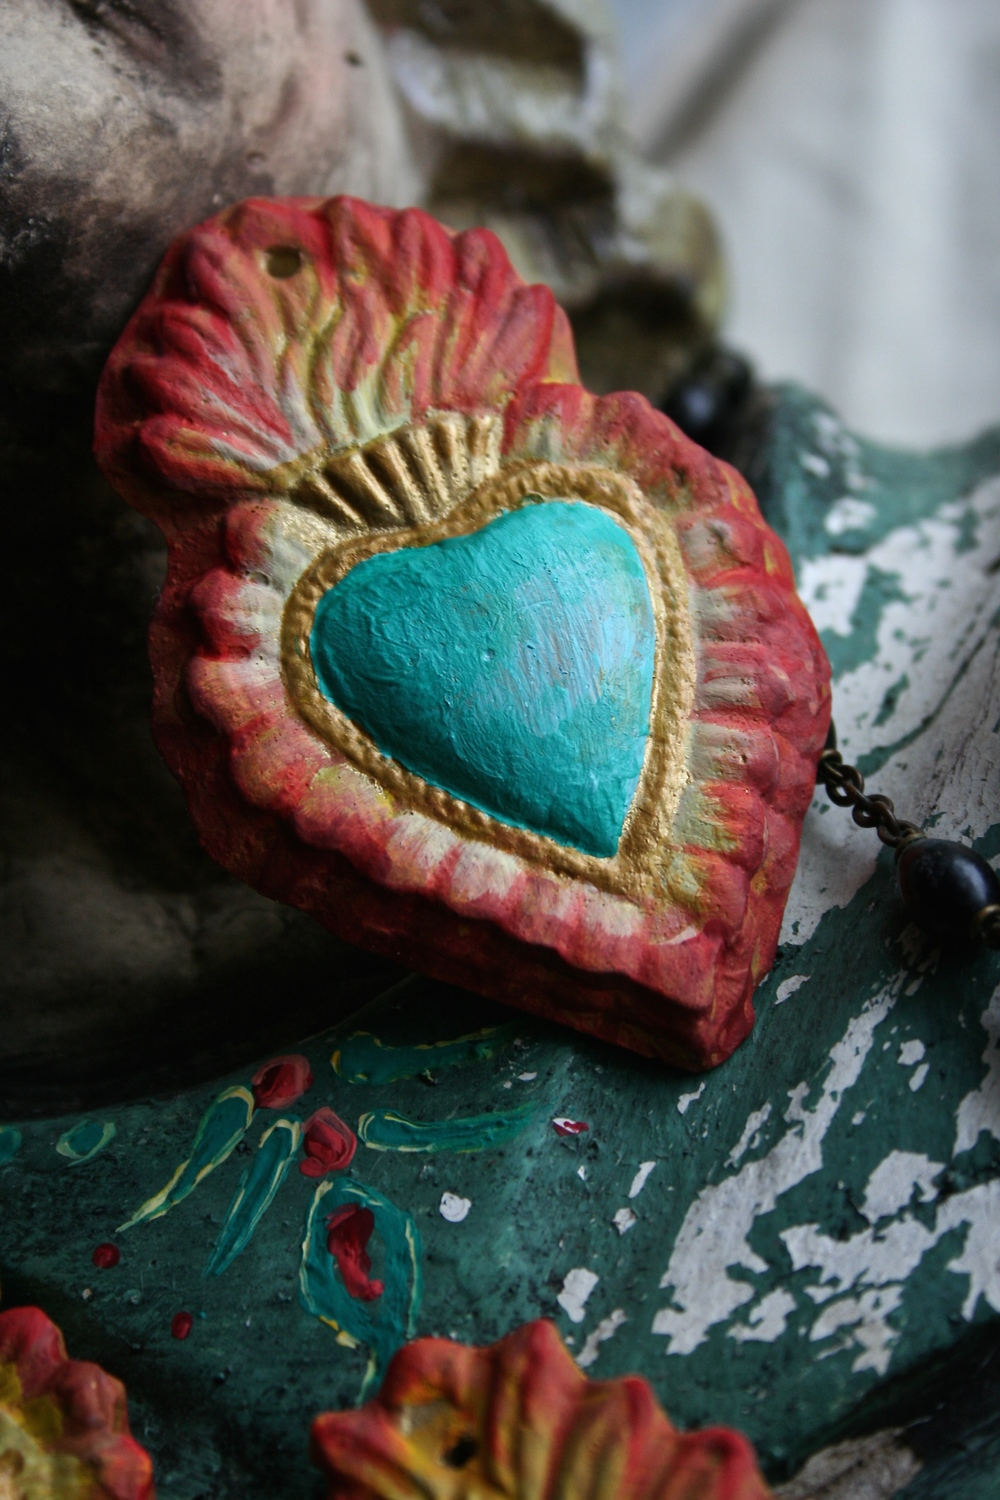 scrap velvets, or other fabrics and textiles onto the heart area for a nice tactile texture.